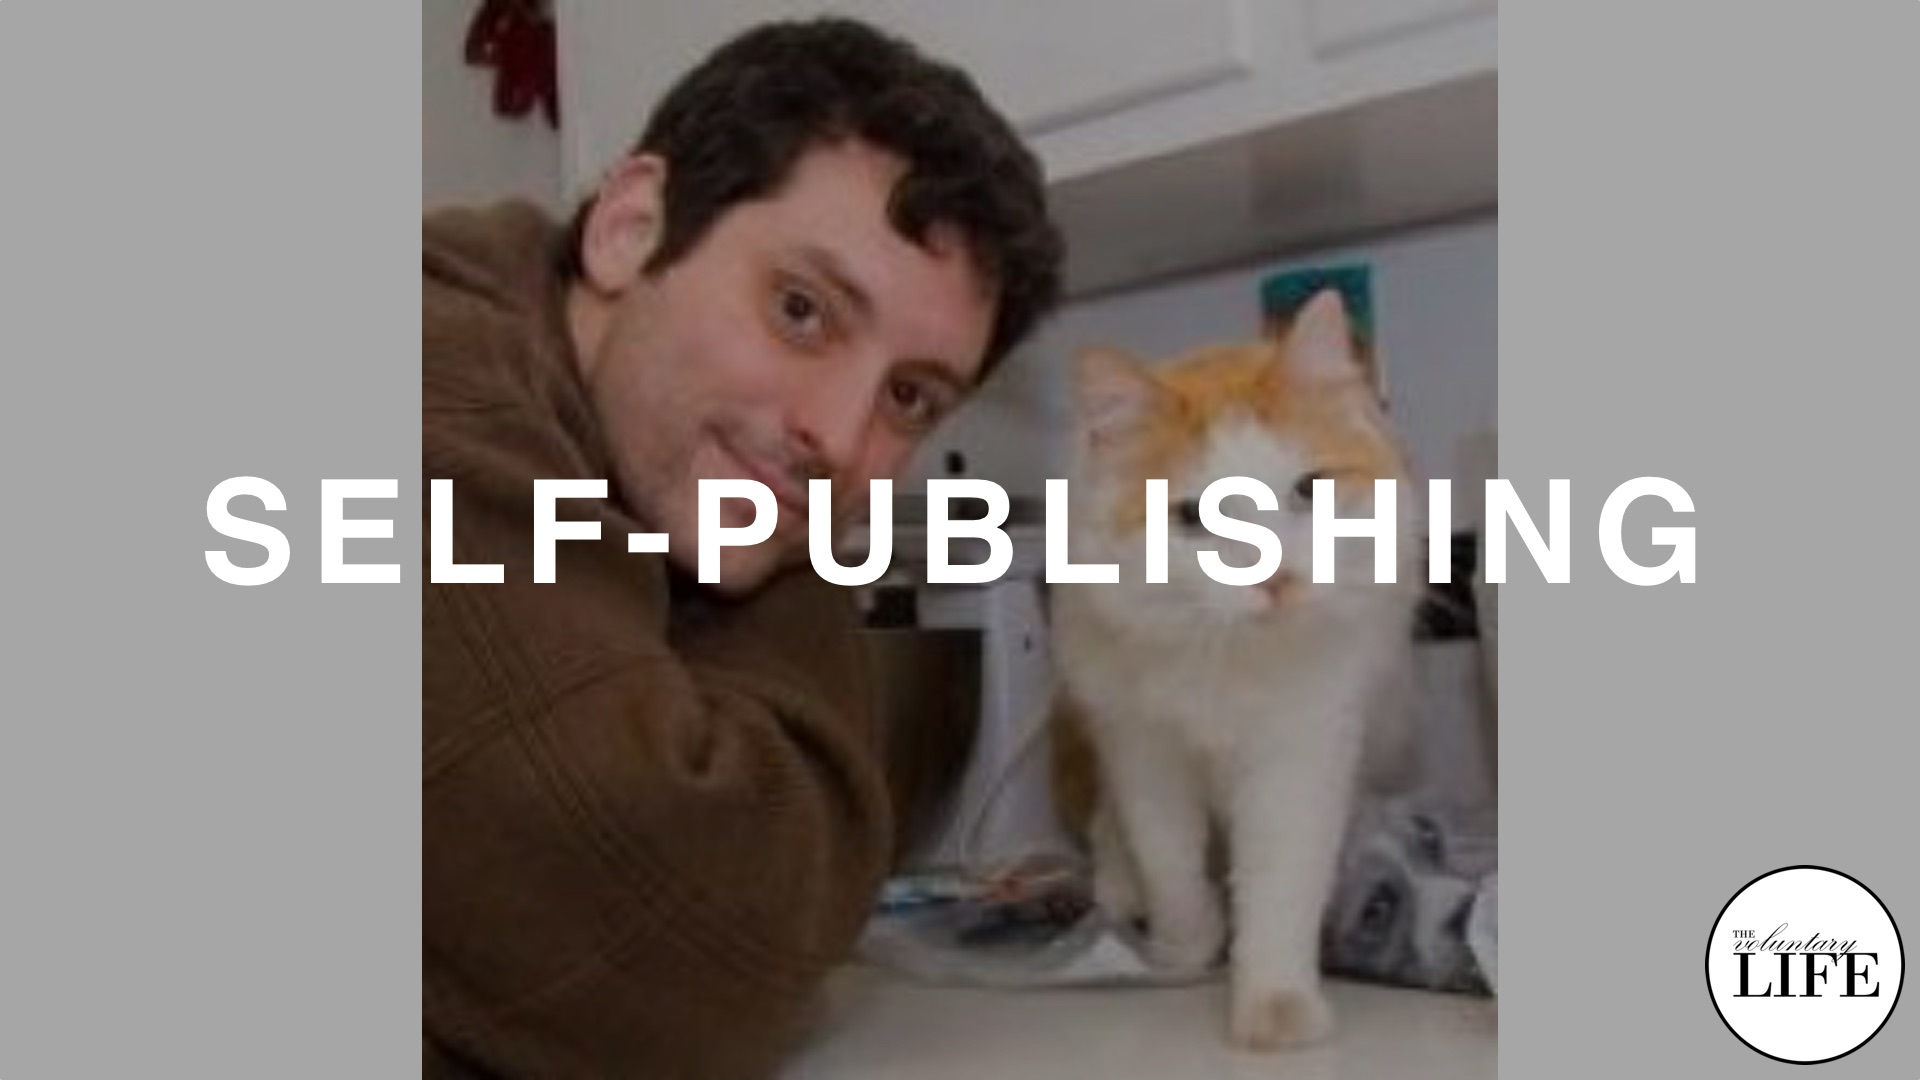 51 Self-Publishing: An Interview With Tarrin Lupo